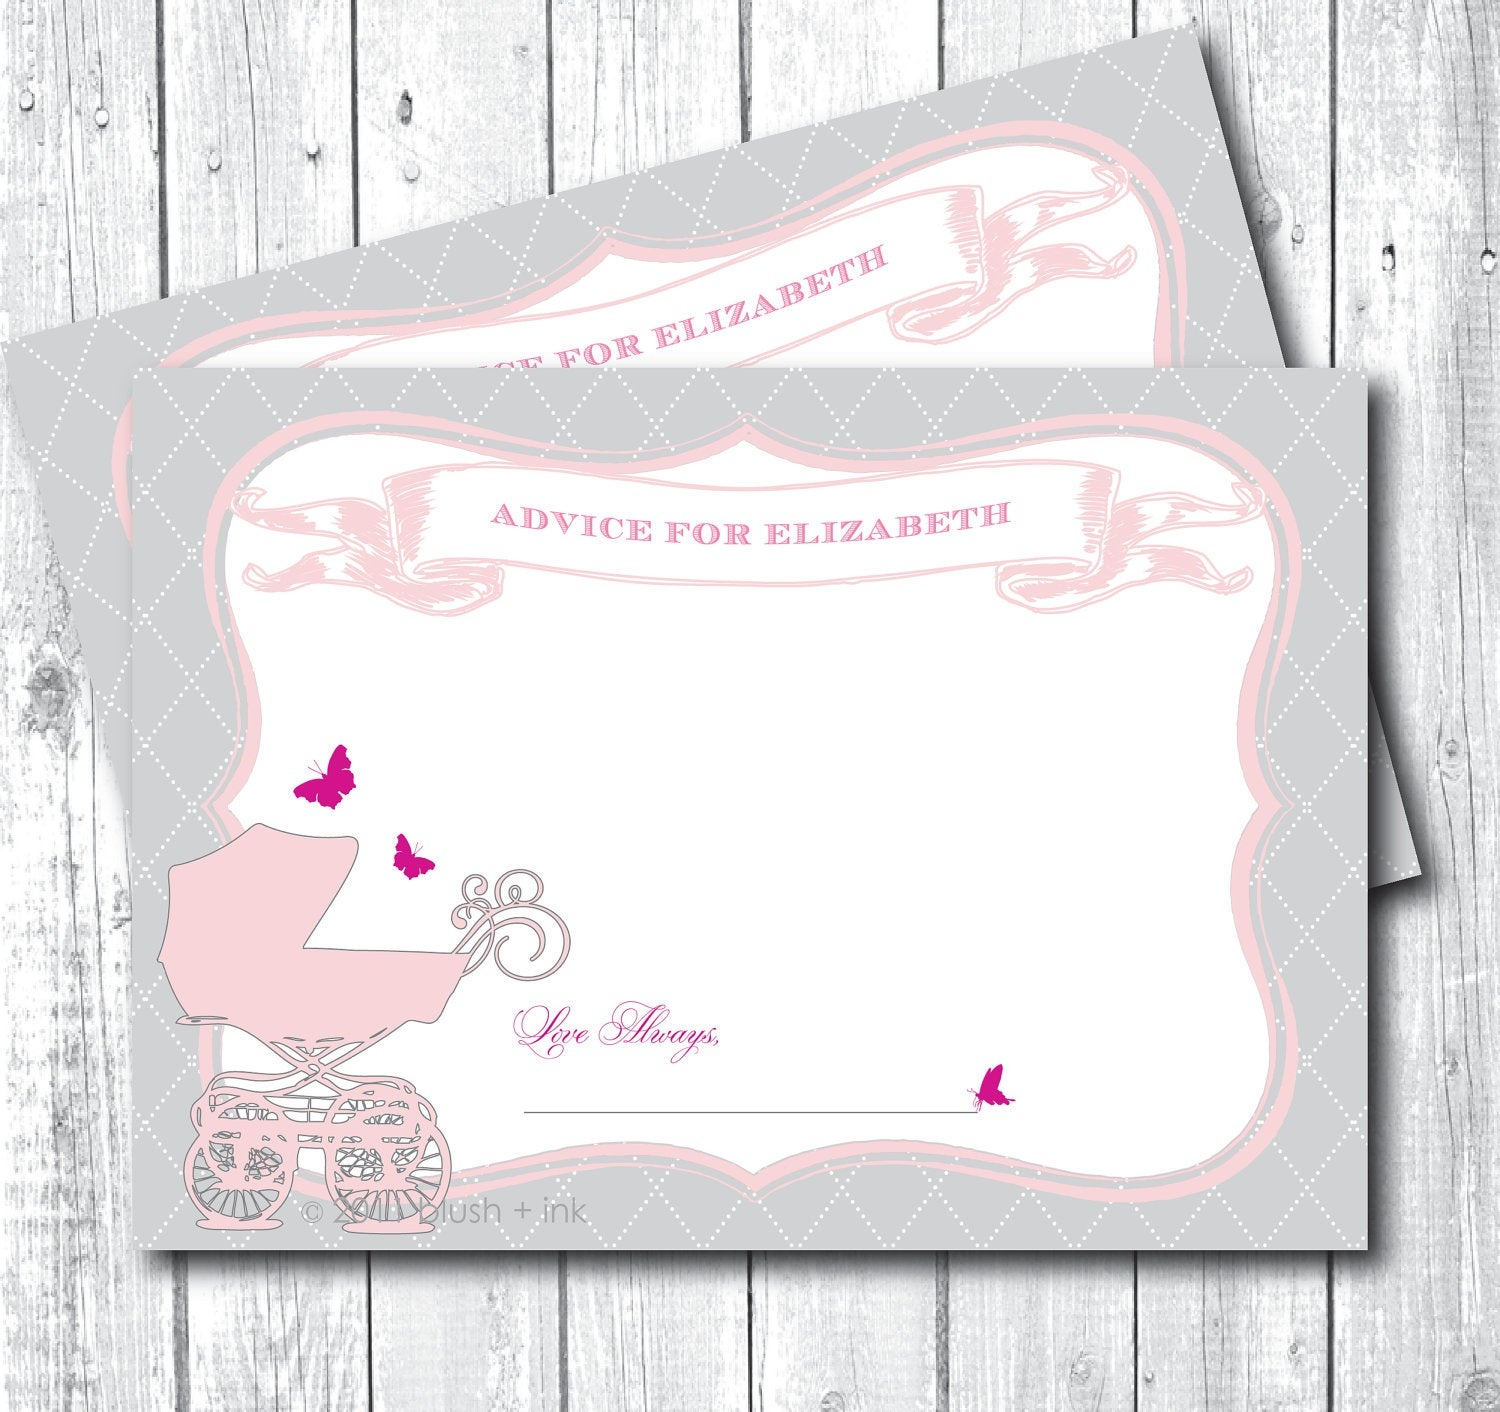 Baby Shower Registry Cards Template Free - Tutlin.psstech.co - Free Printable Baby Registry Cards